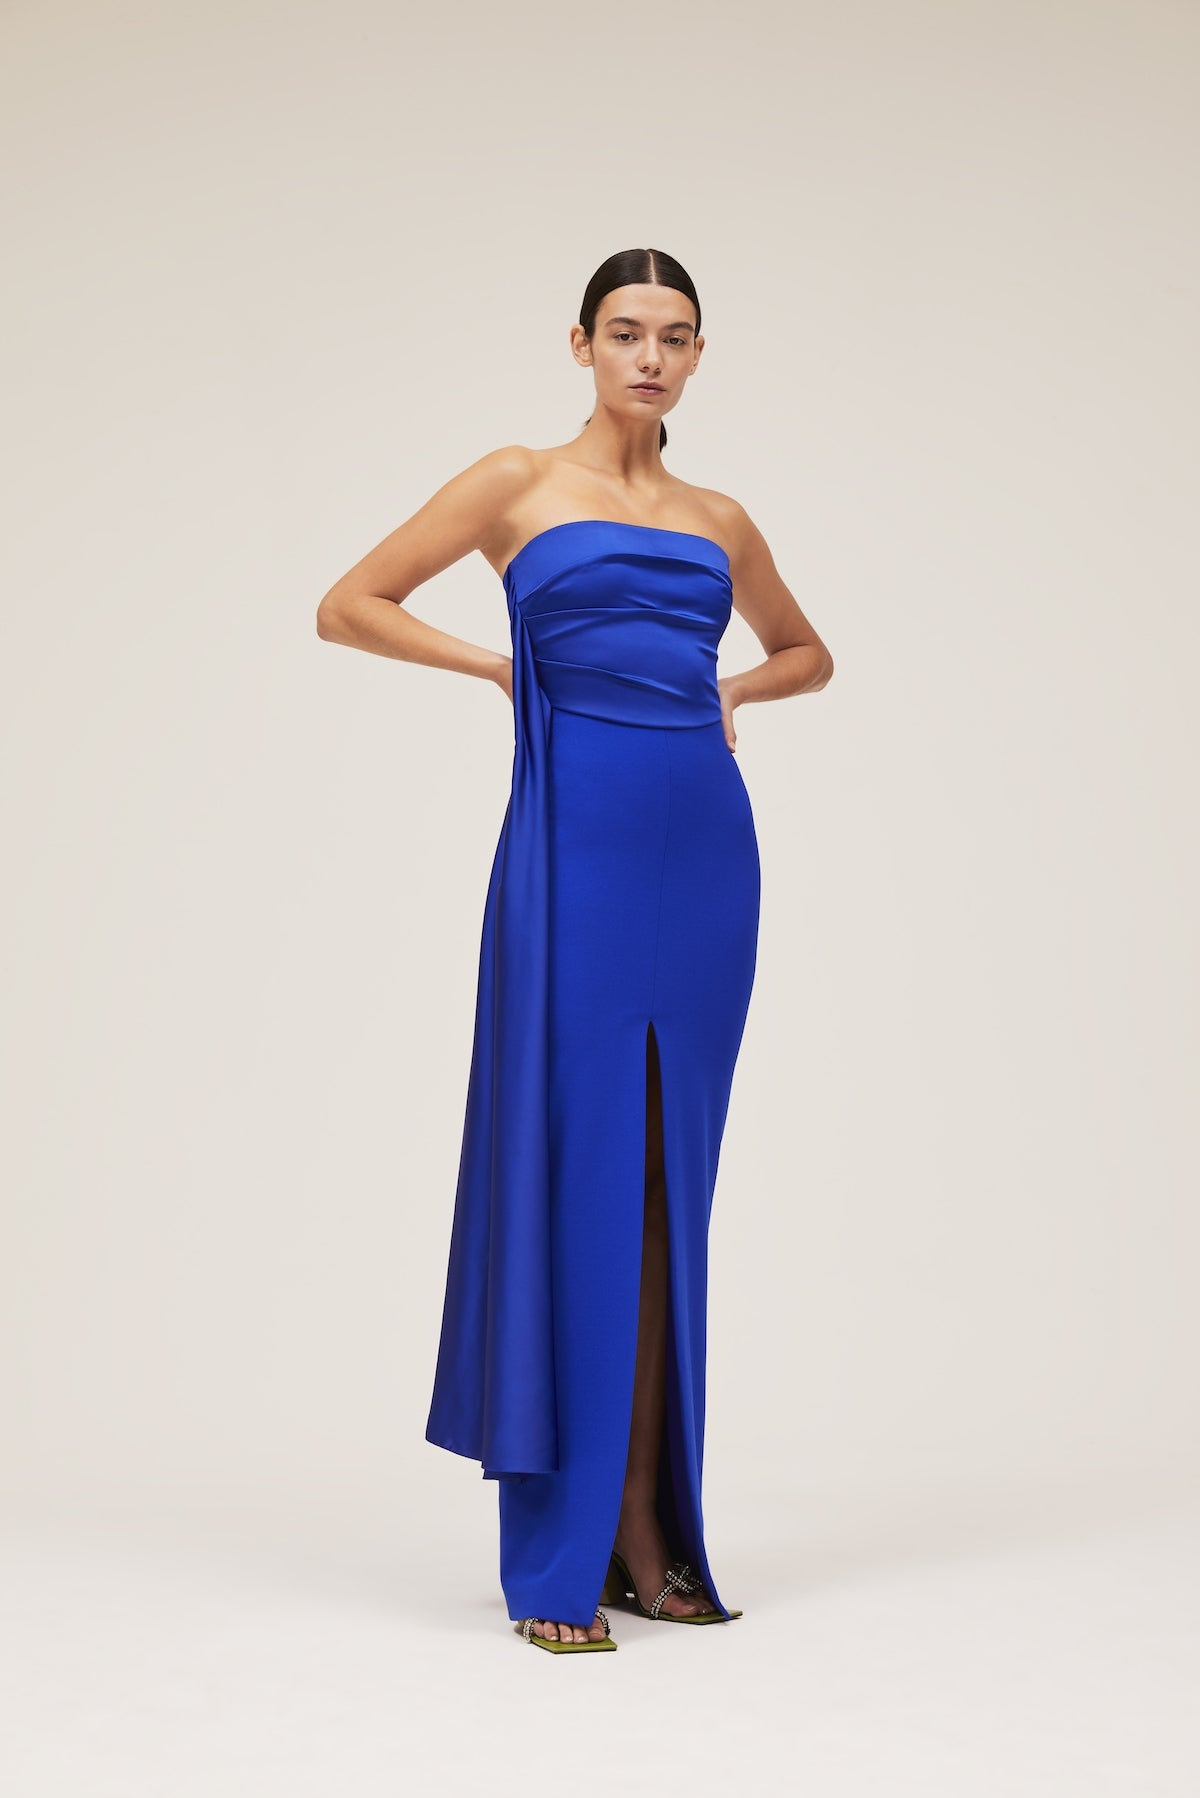 The Harlow Dress in Cobalt Blue